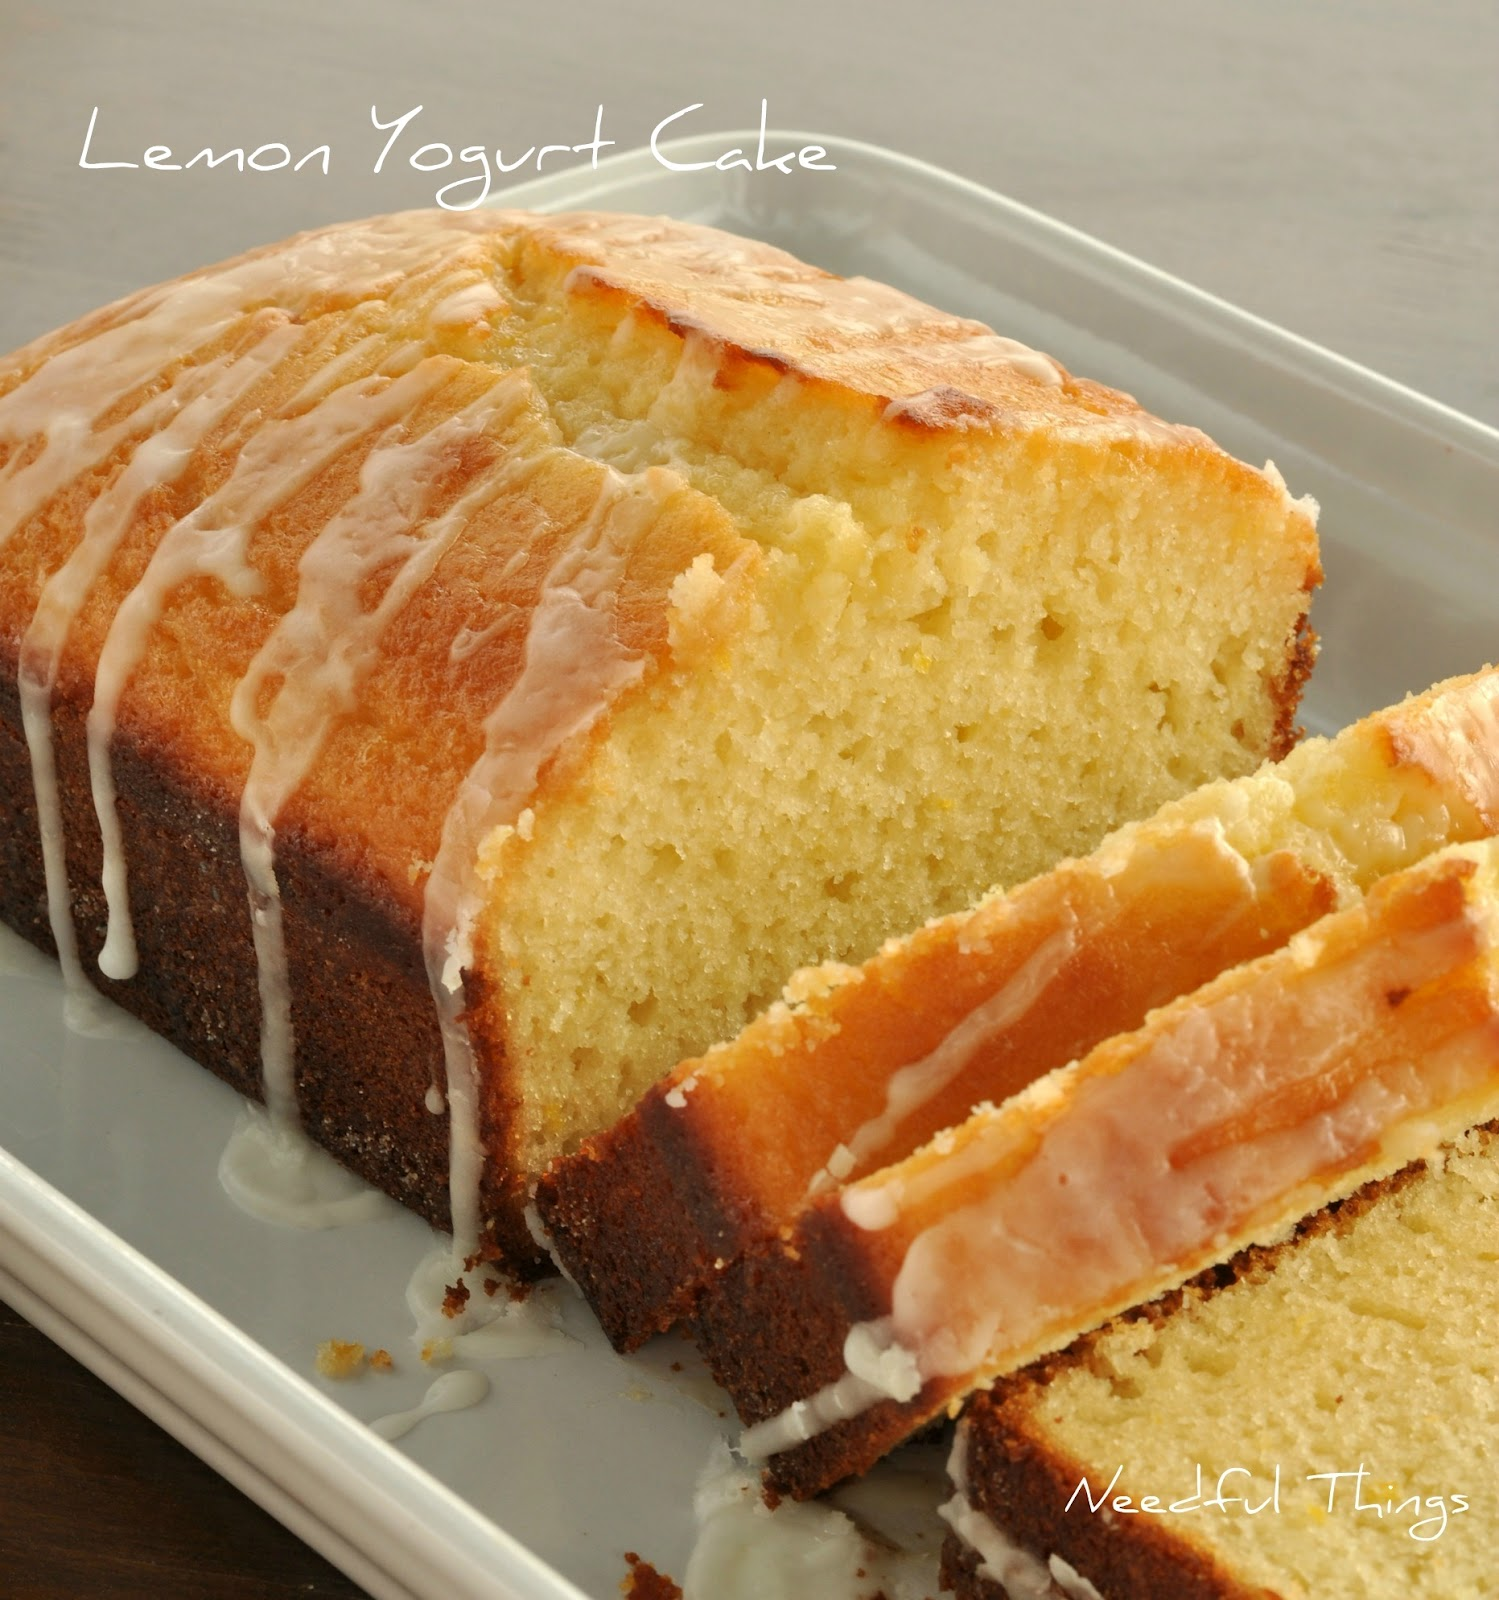 Needful Things: Lemon Yogurt Cake